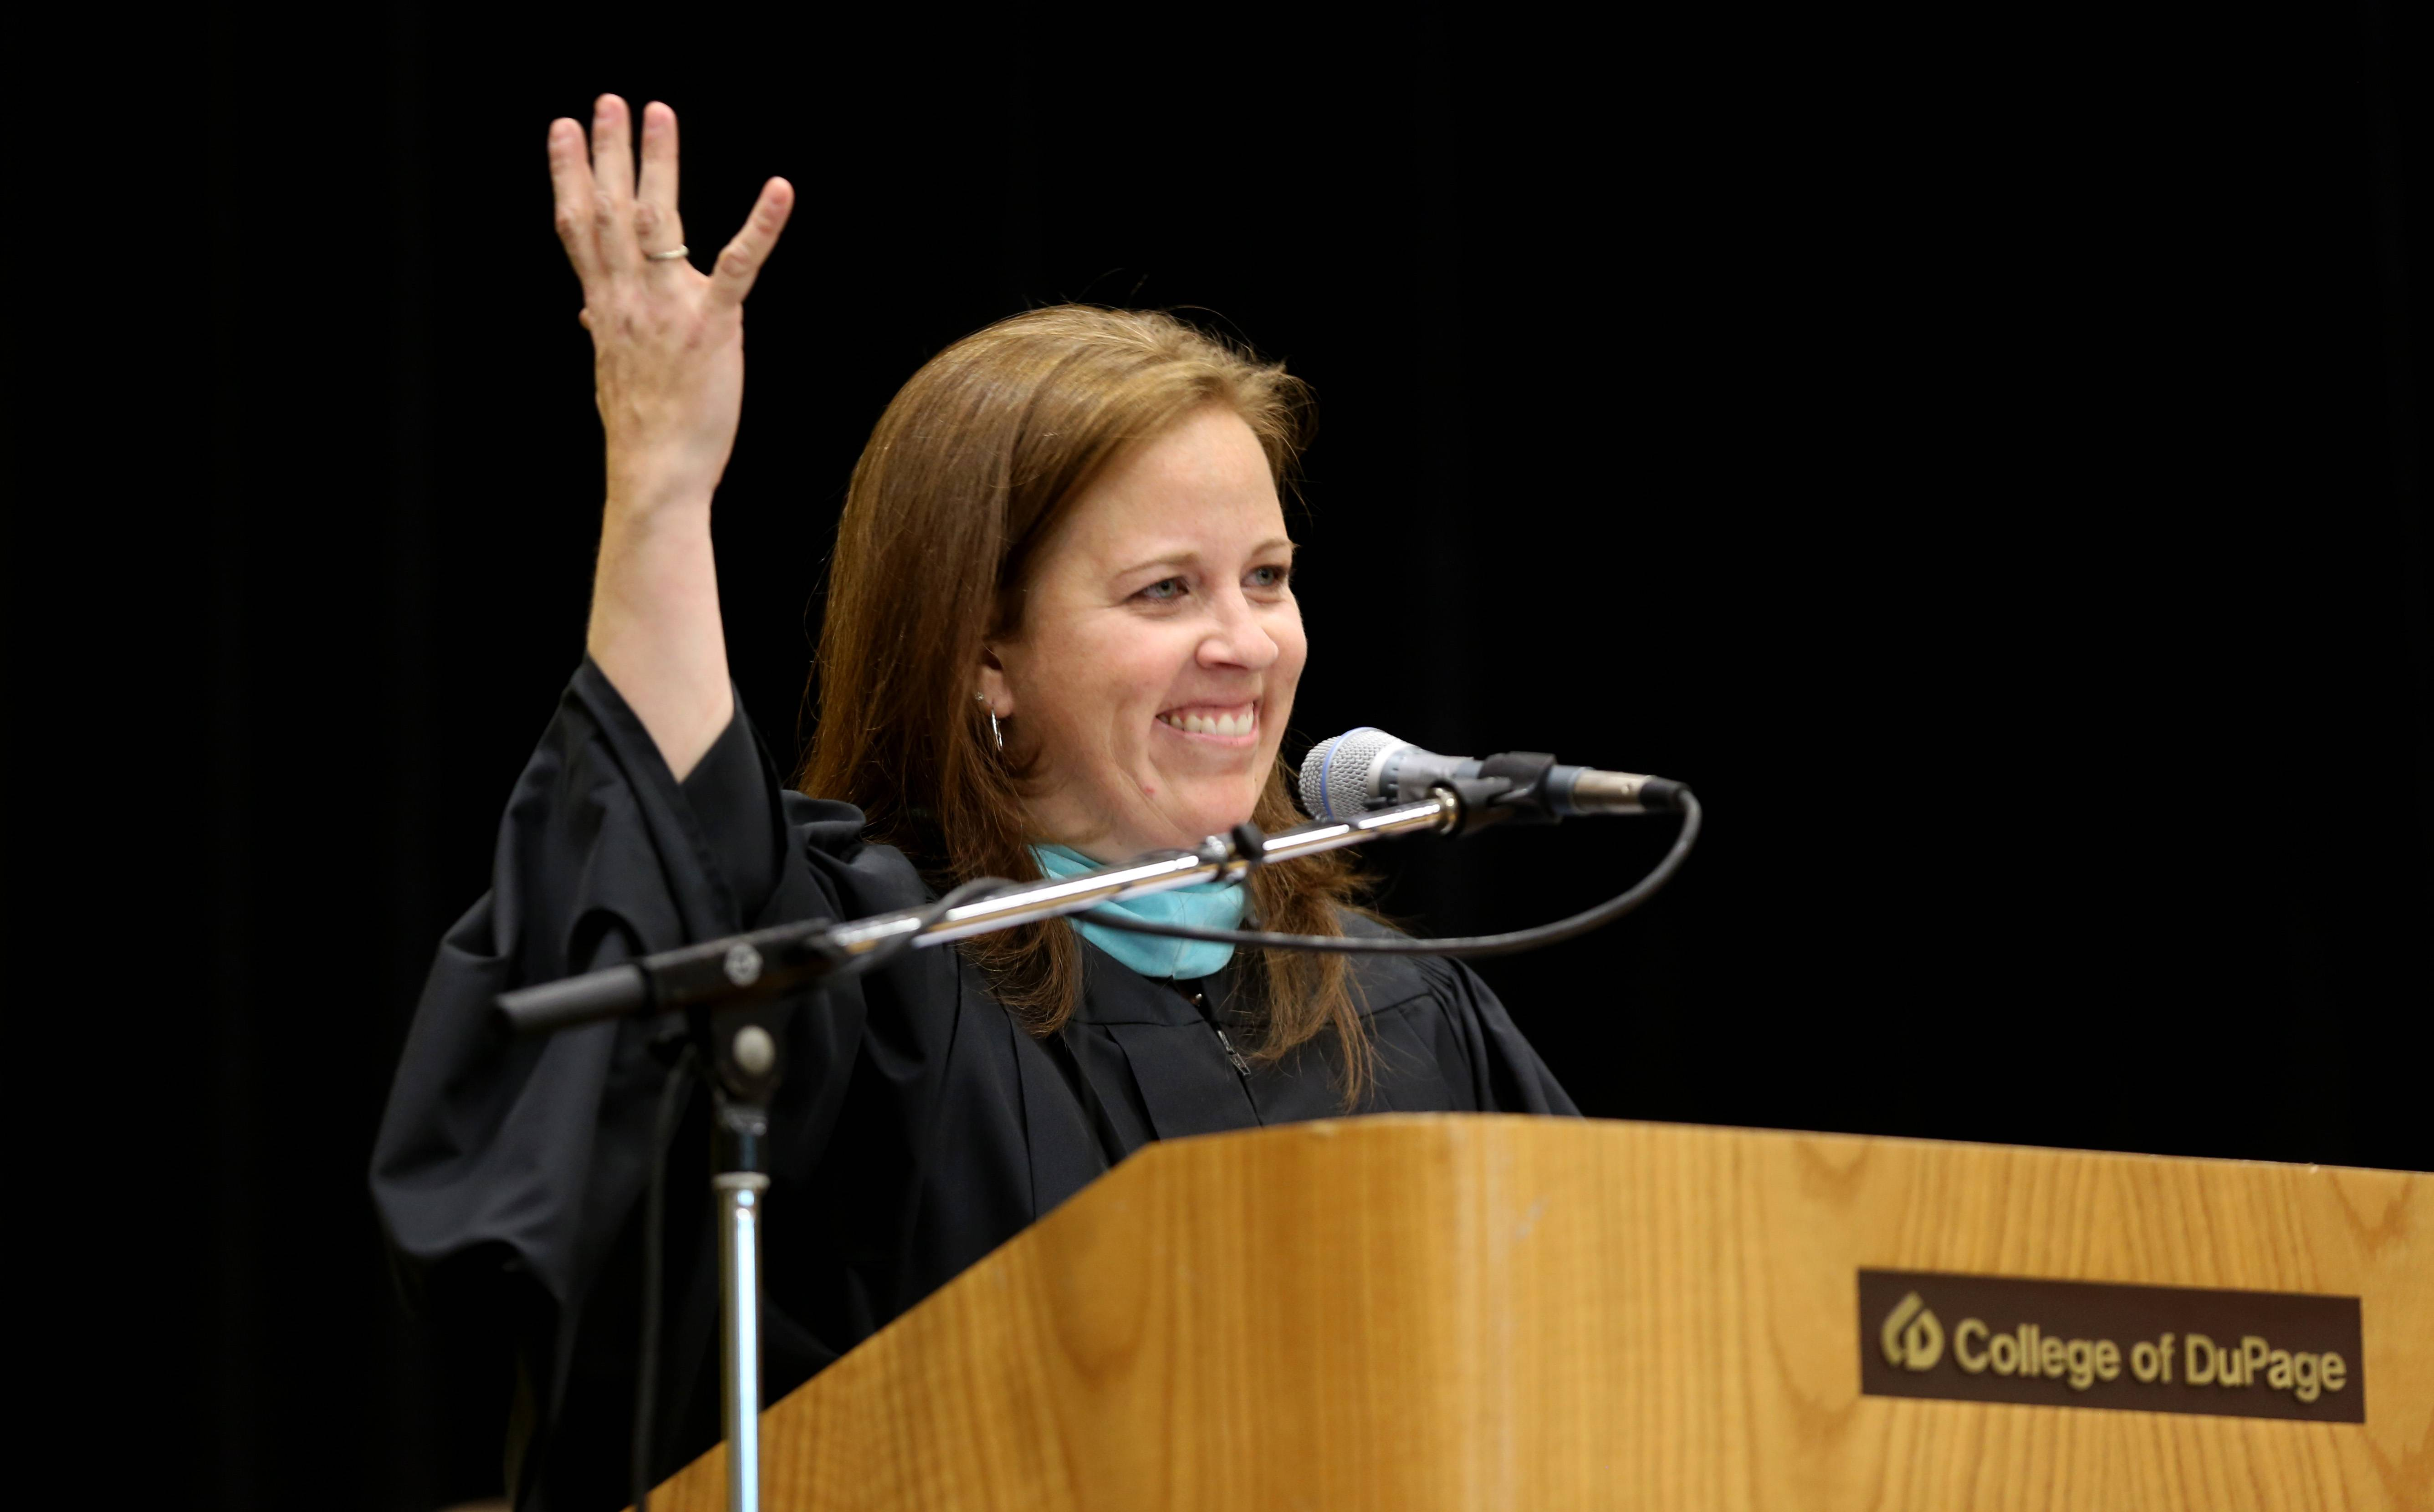 After receiving the Hennessey Award, Jennifer Diamantos addresses the Glenbard North High School Class of 2014, at the College of DuPage.